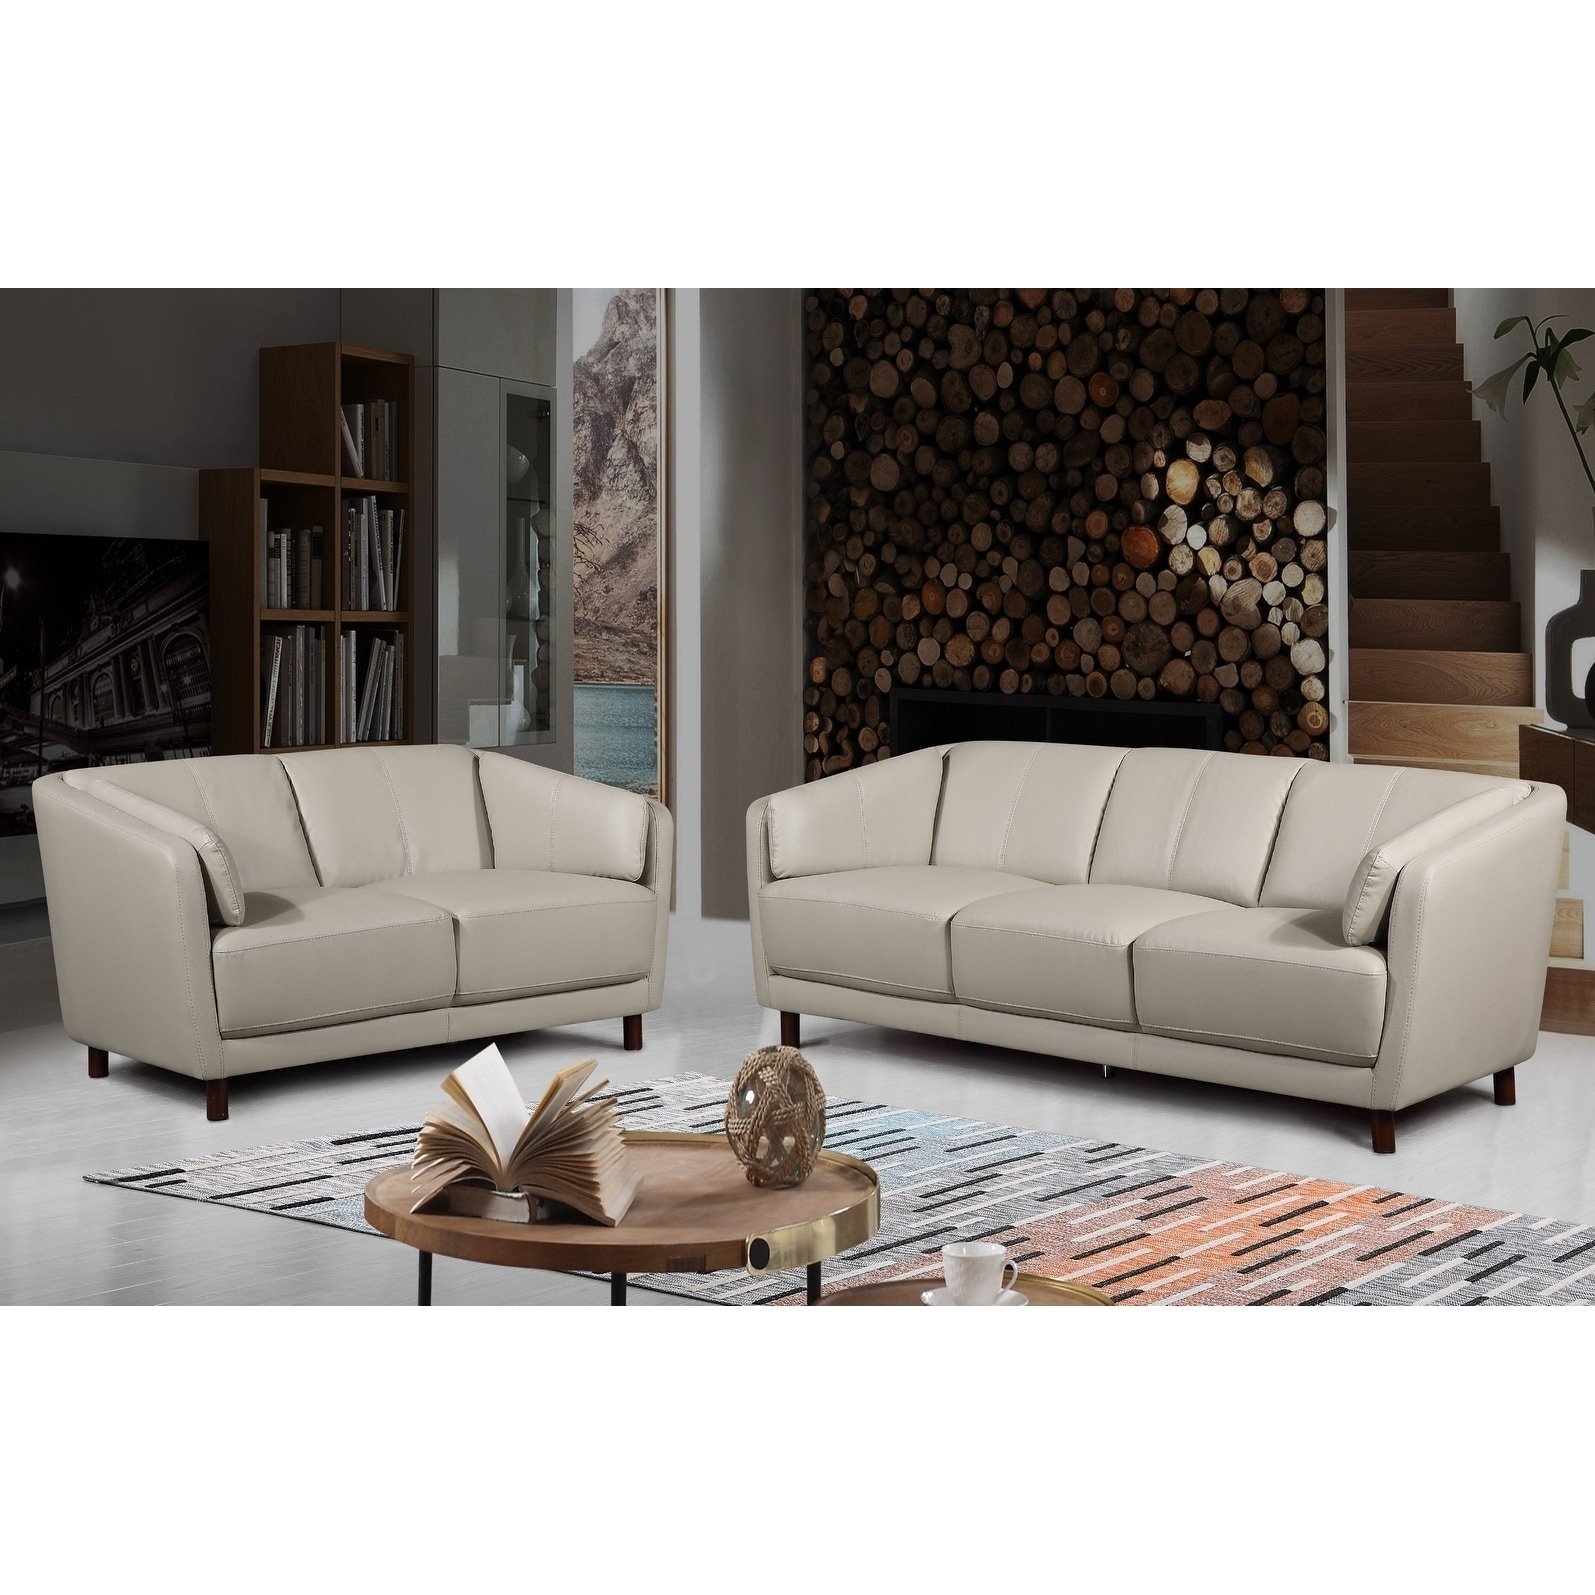 Leather And Fabric Sofa Sets | Fabric Leather Mix Sectional Sofa Los ...